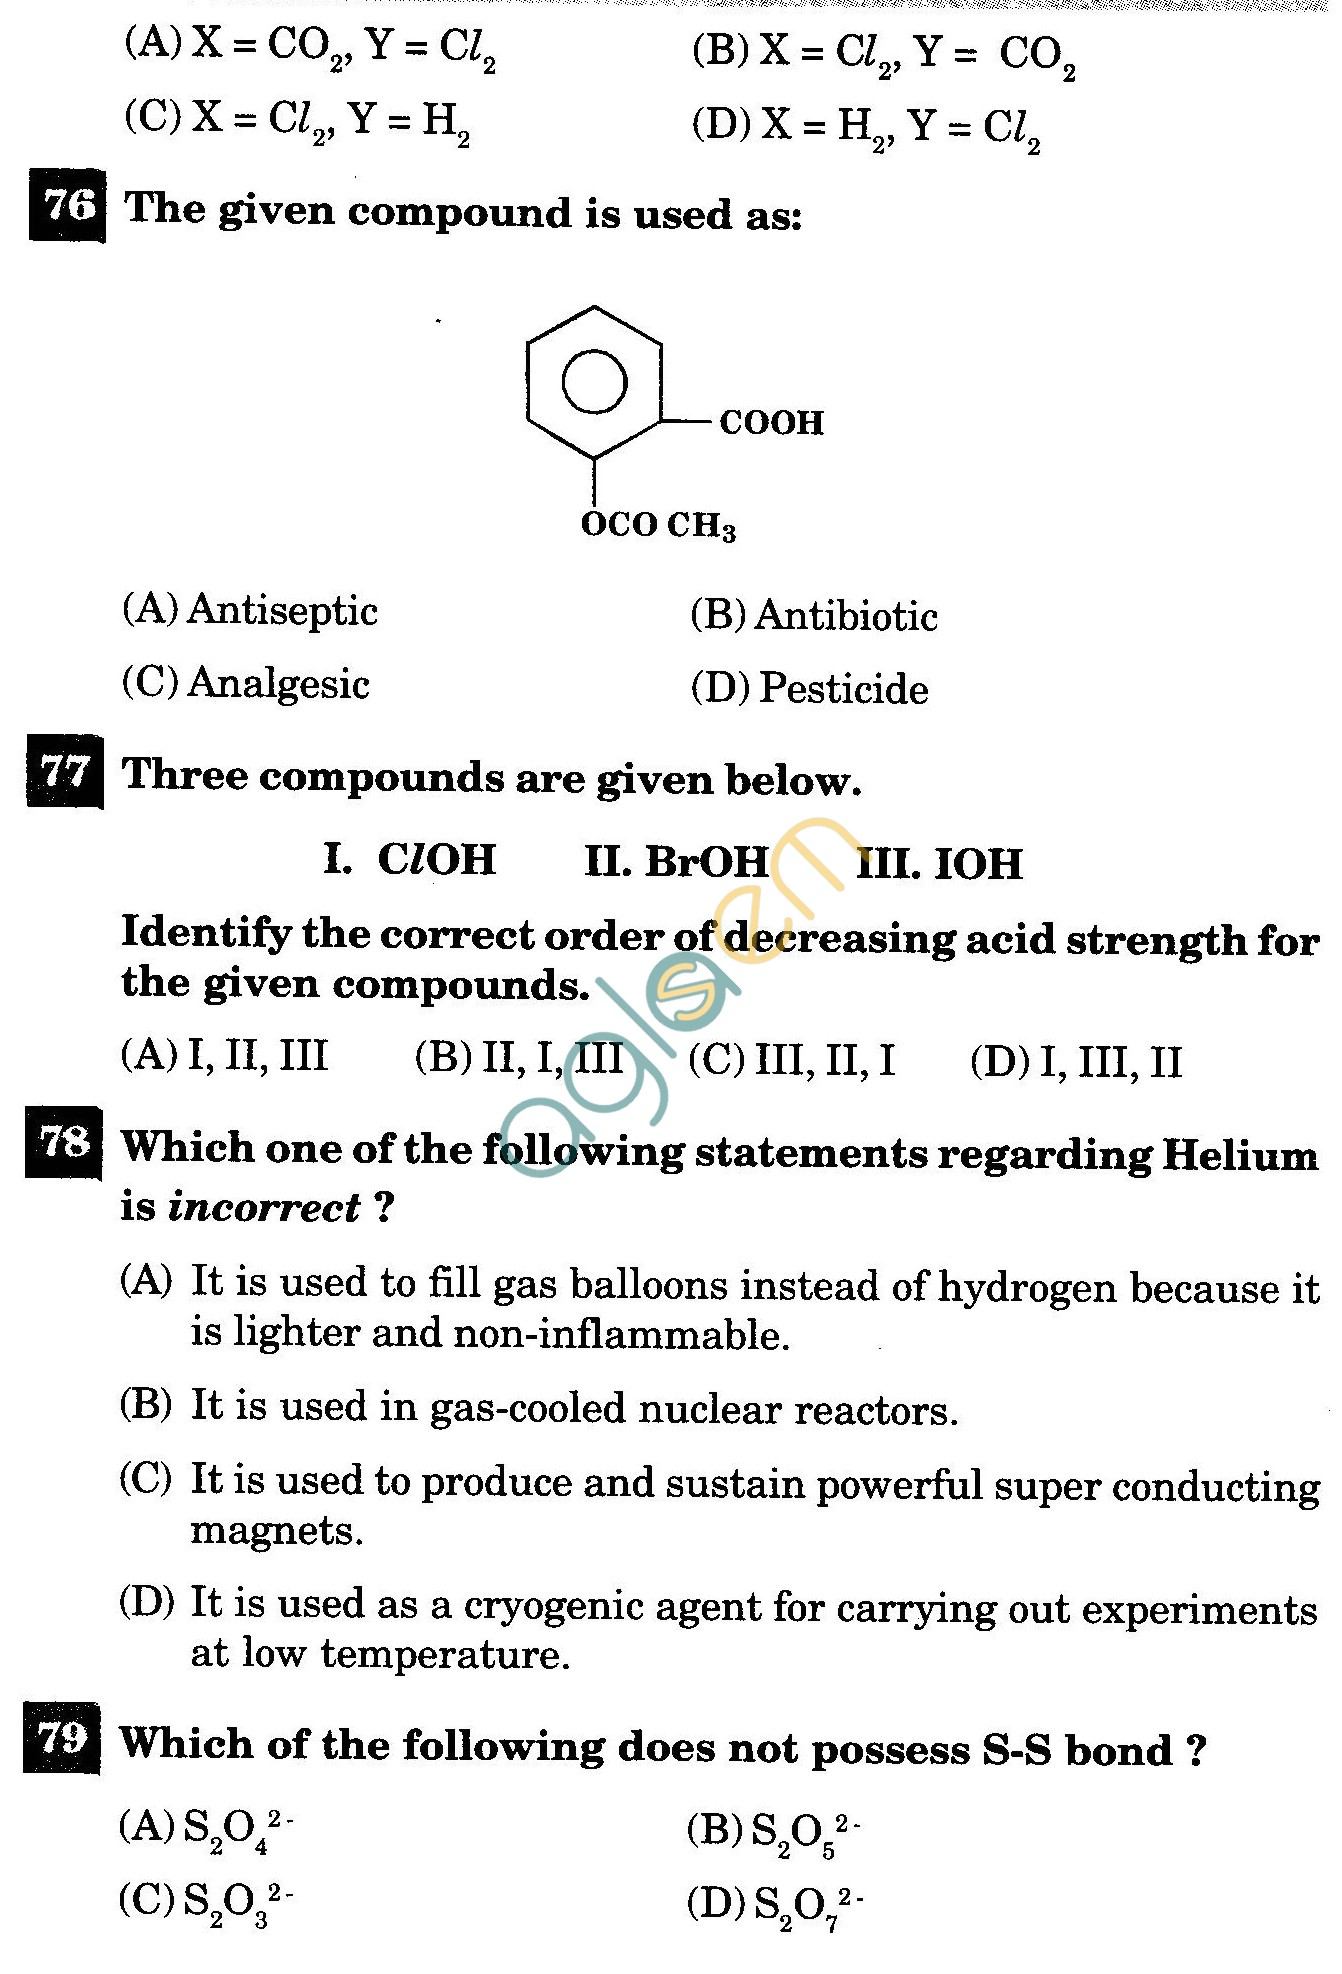 NSTSE 2011 Class XII PCB Question Paper with Answers - Chemistry